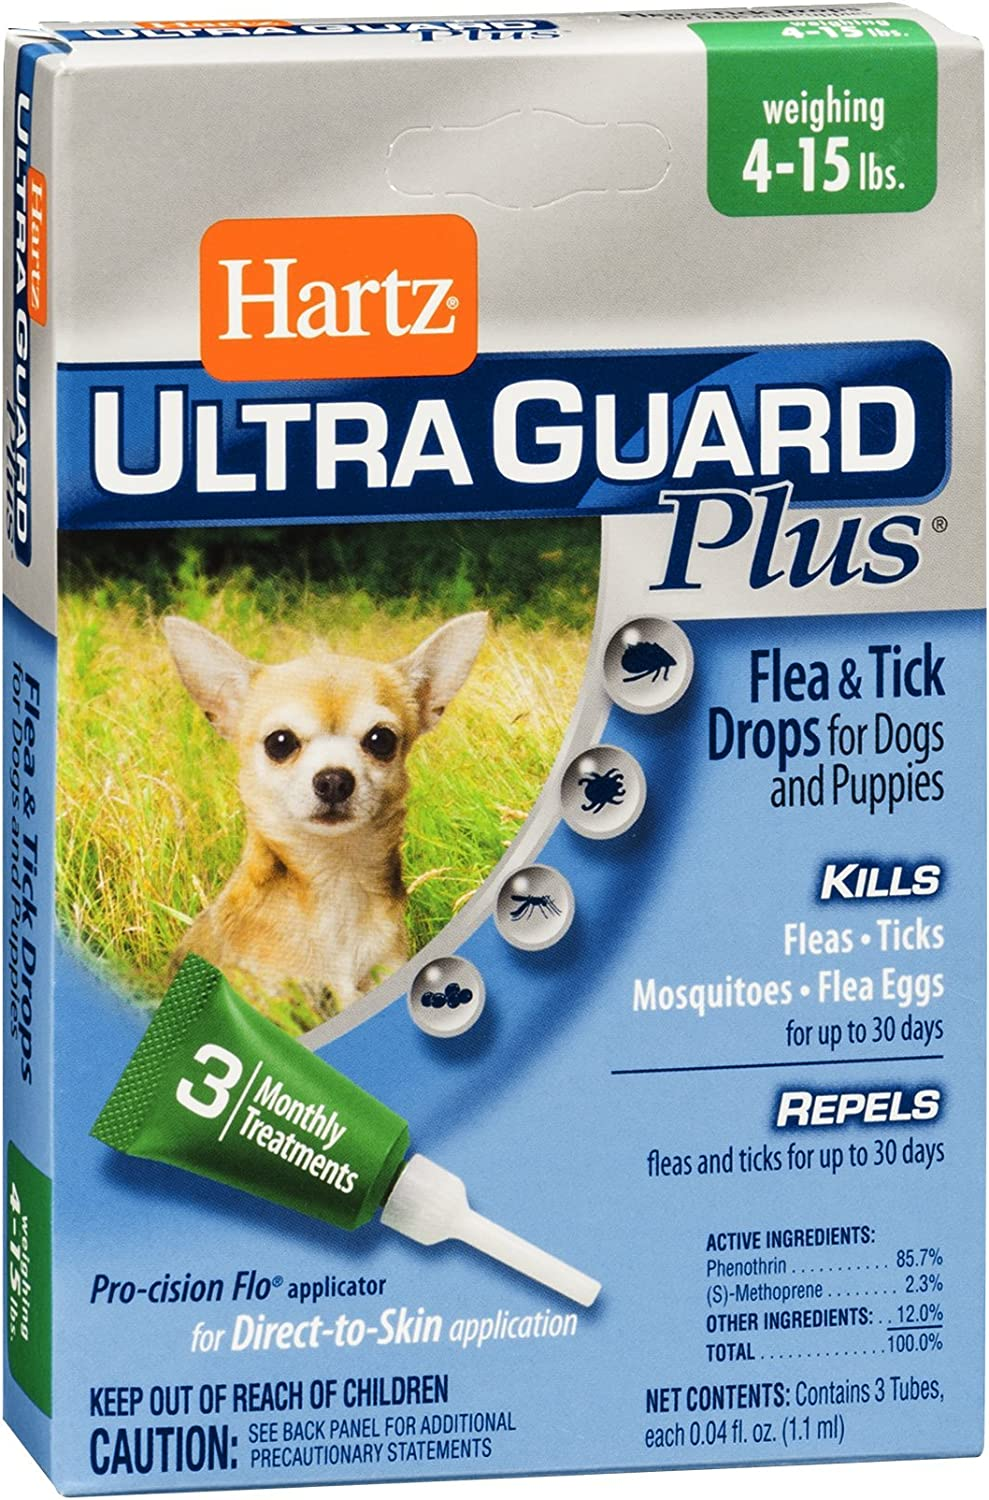 Hartz Ultra Guard Plus Drops For Dogs 415 Lbs. by HARTZ